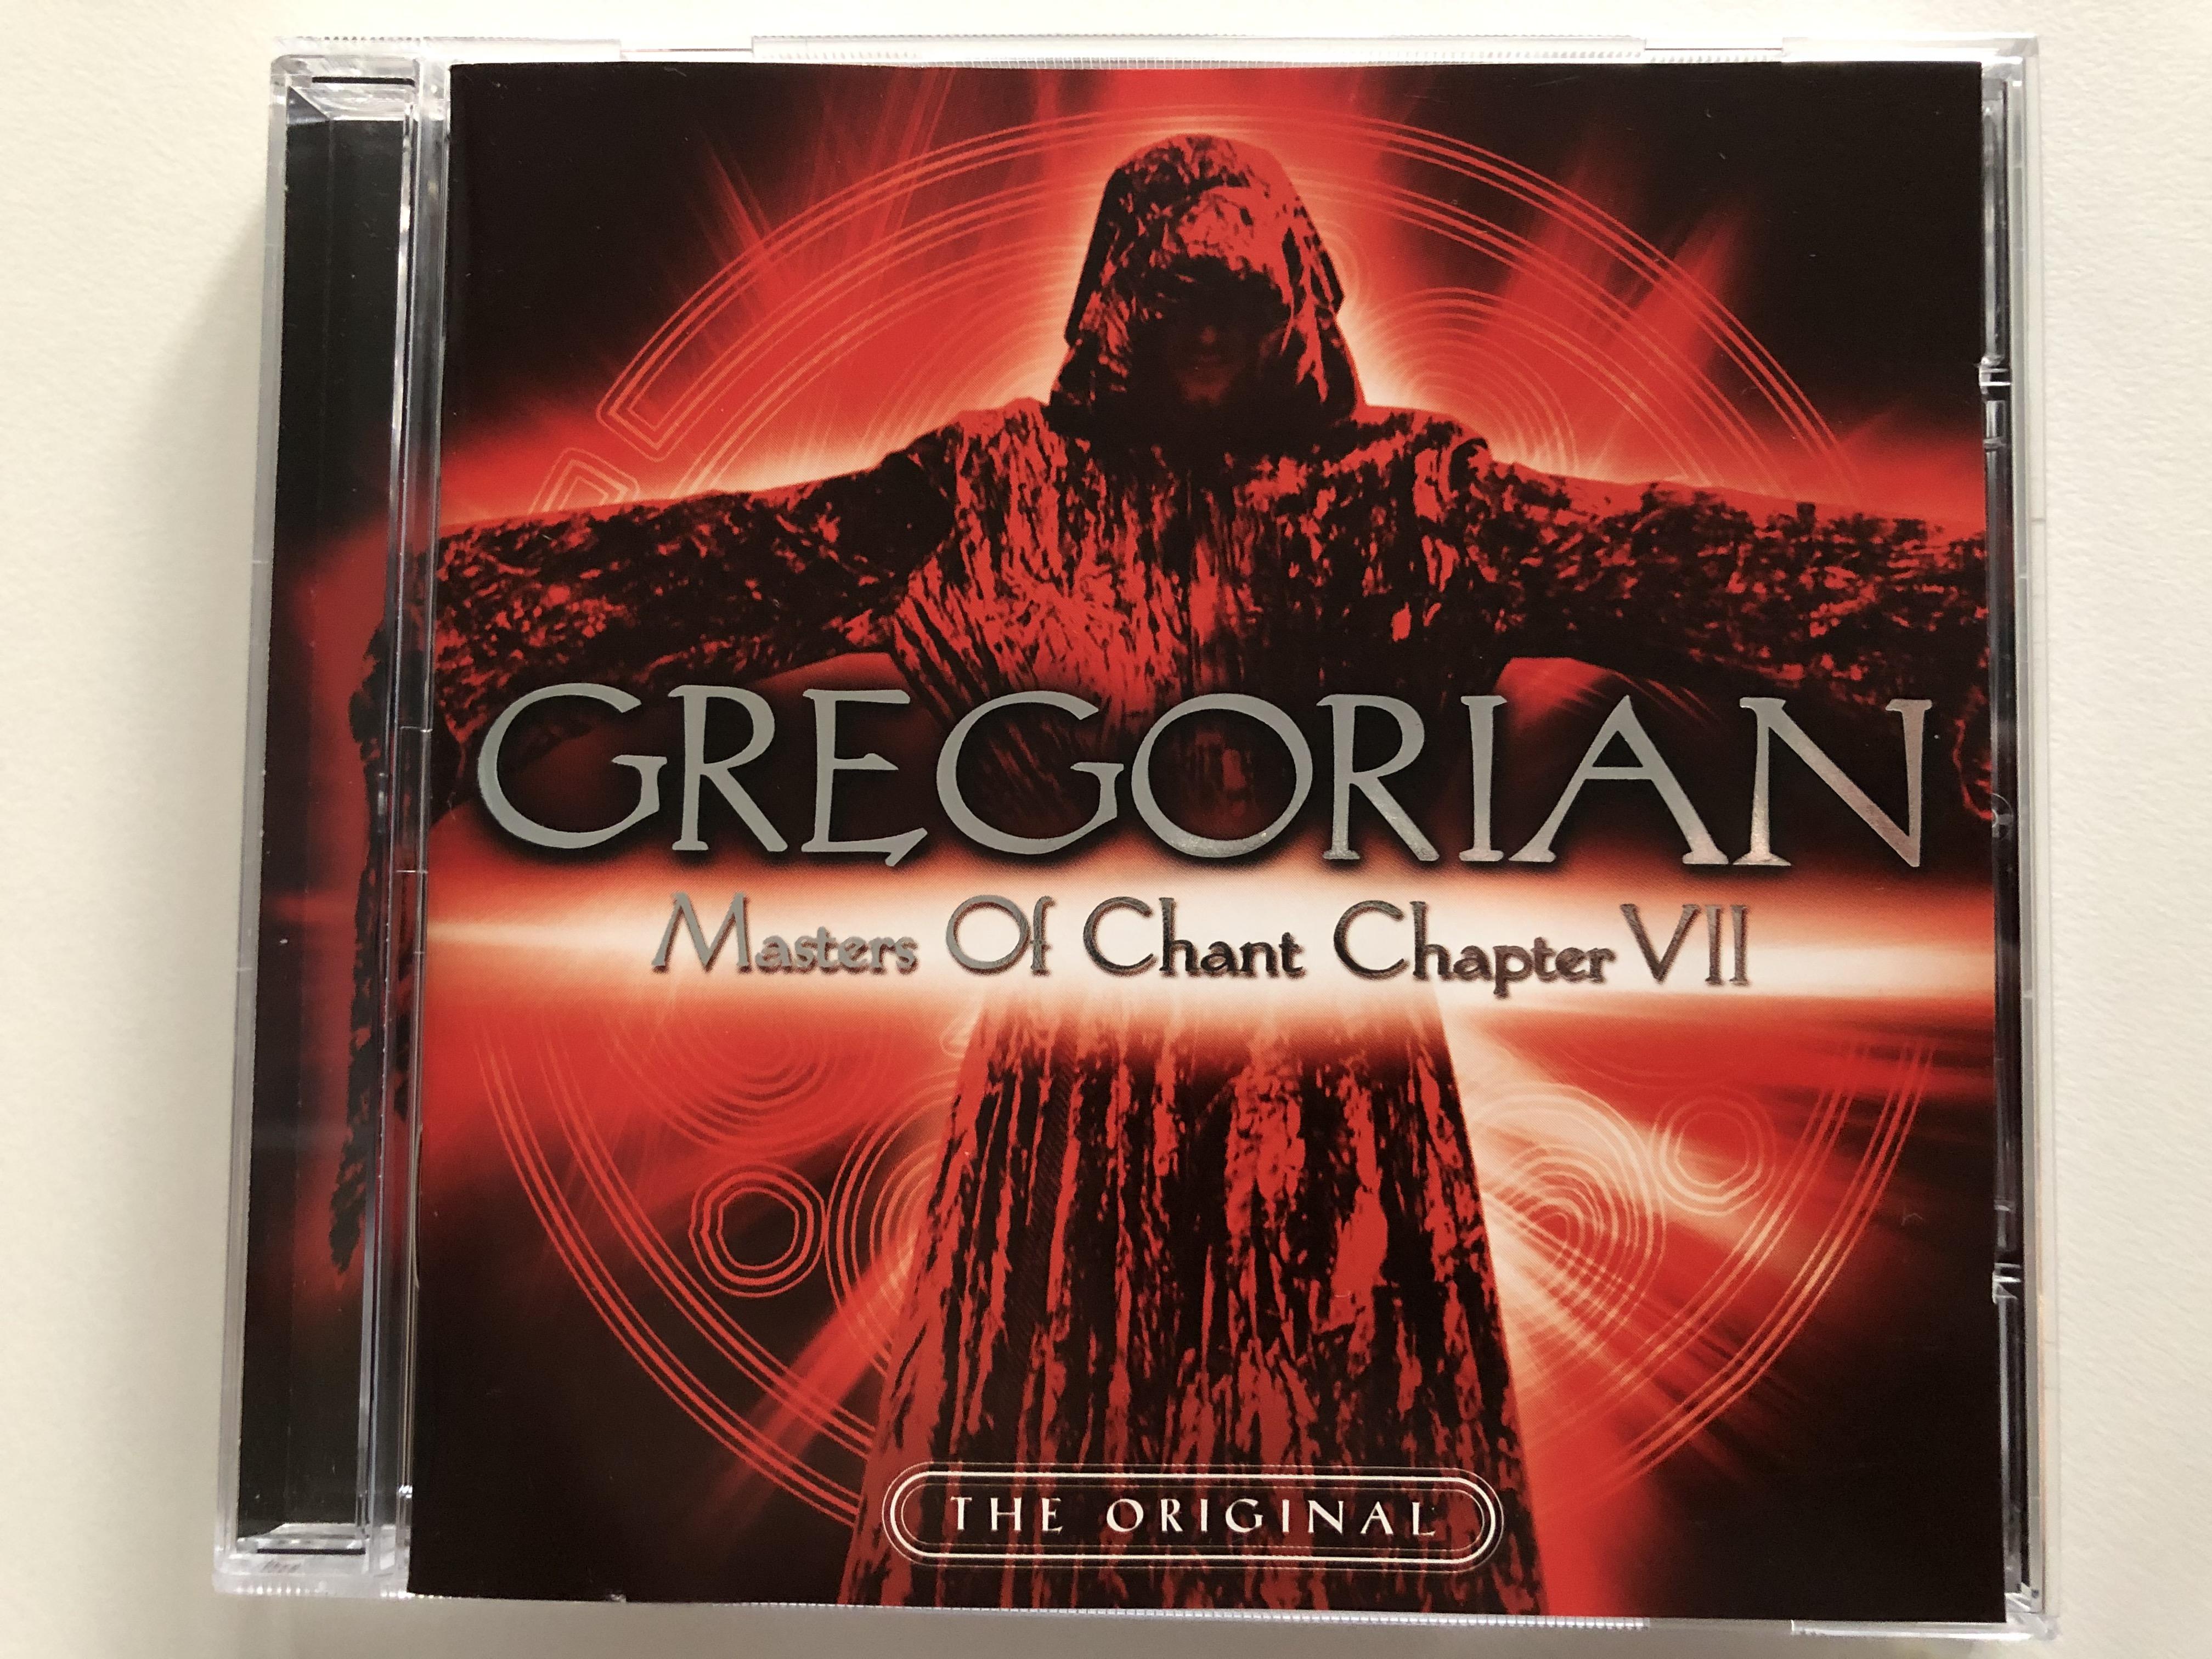 gregorian-masters-of-chant-chapter-vii-ear-music-audio-cd-2009-0195962ere-1-.jpg